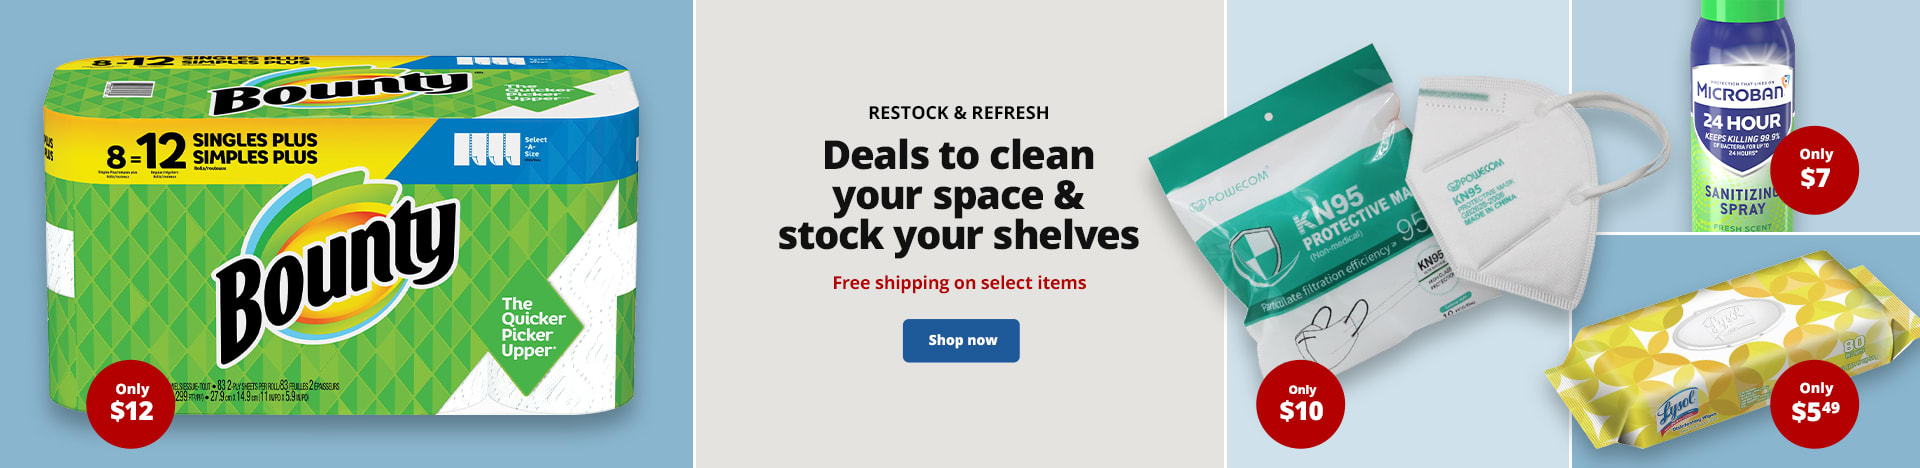 Restock & Refresh. Deals to clean your space & stock your shelves. Free shipping on select items